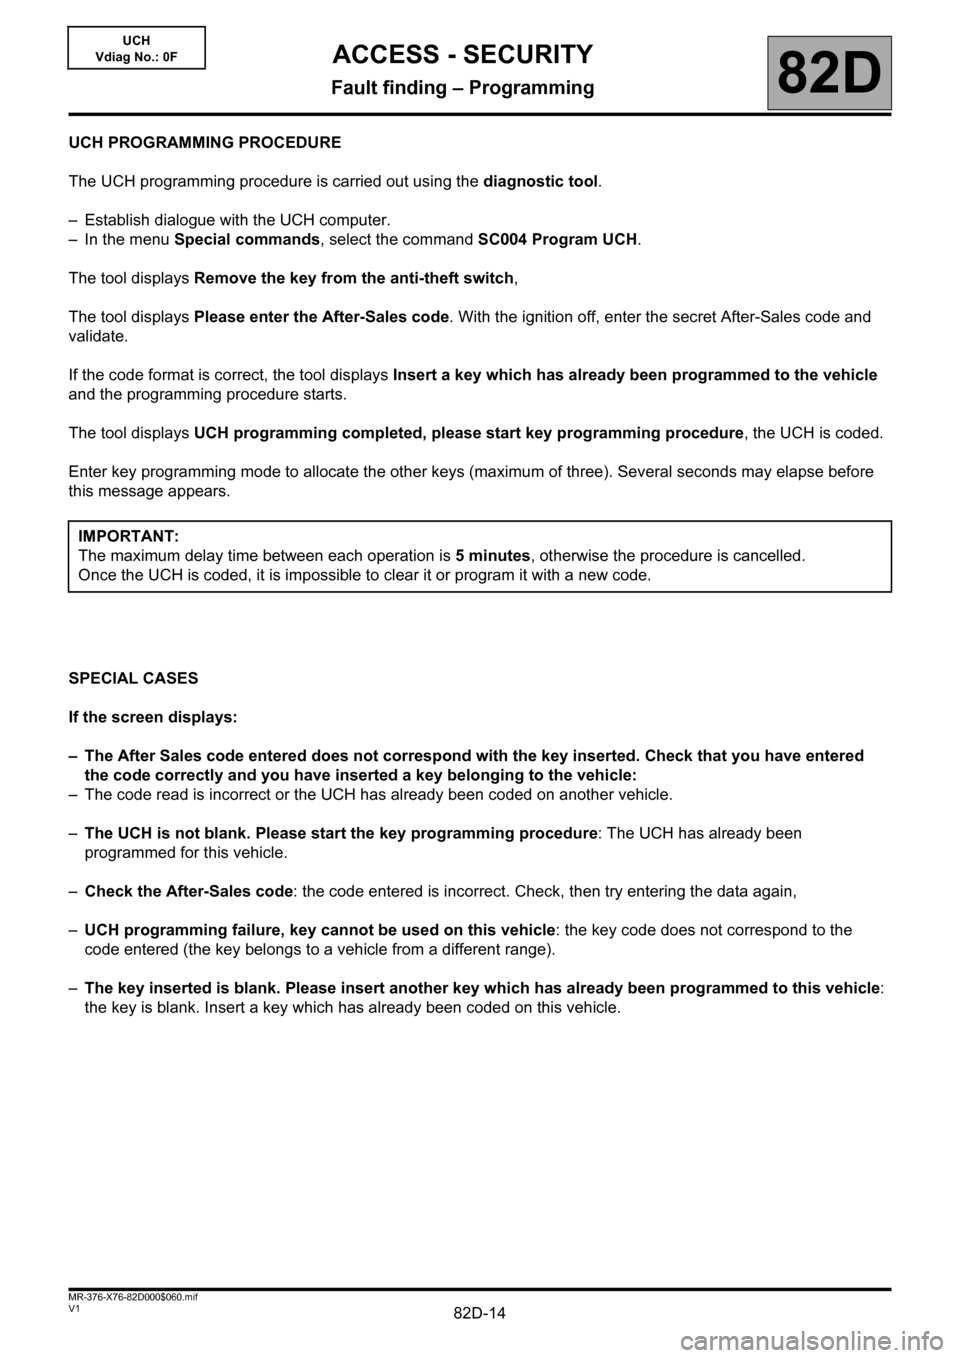 RENAULT KANGOO 2013 X61 / 2.G Access Security Workshop Manual, Page 14